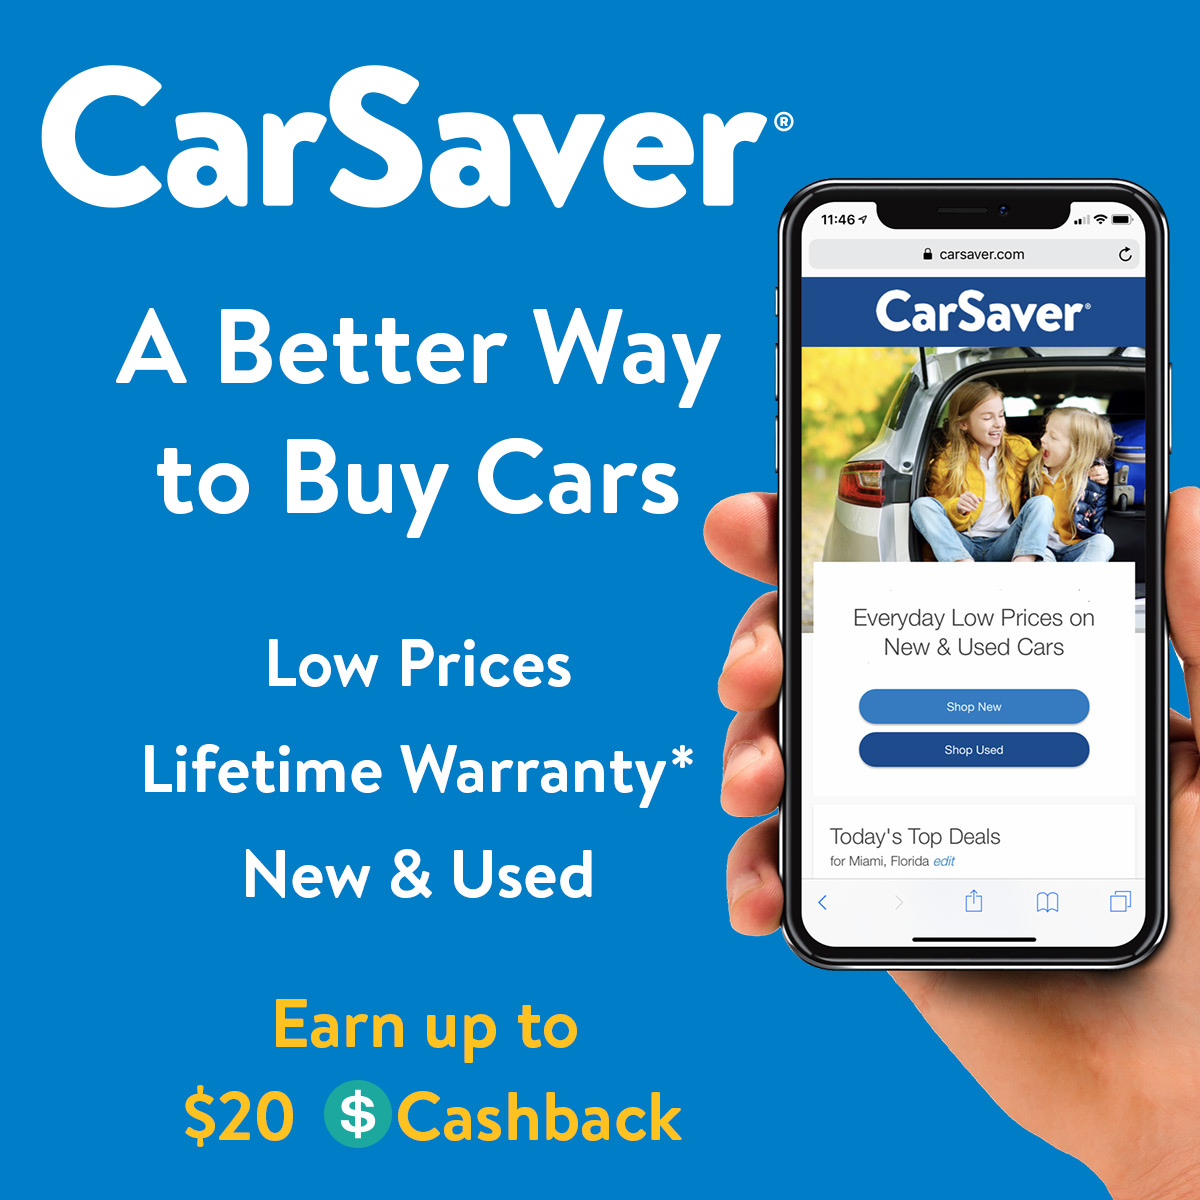 Buy a Car - Introducing Car Saver